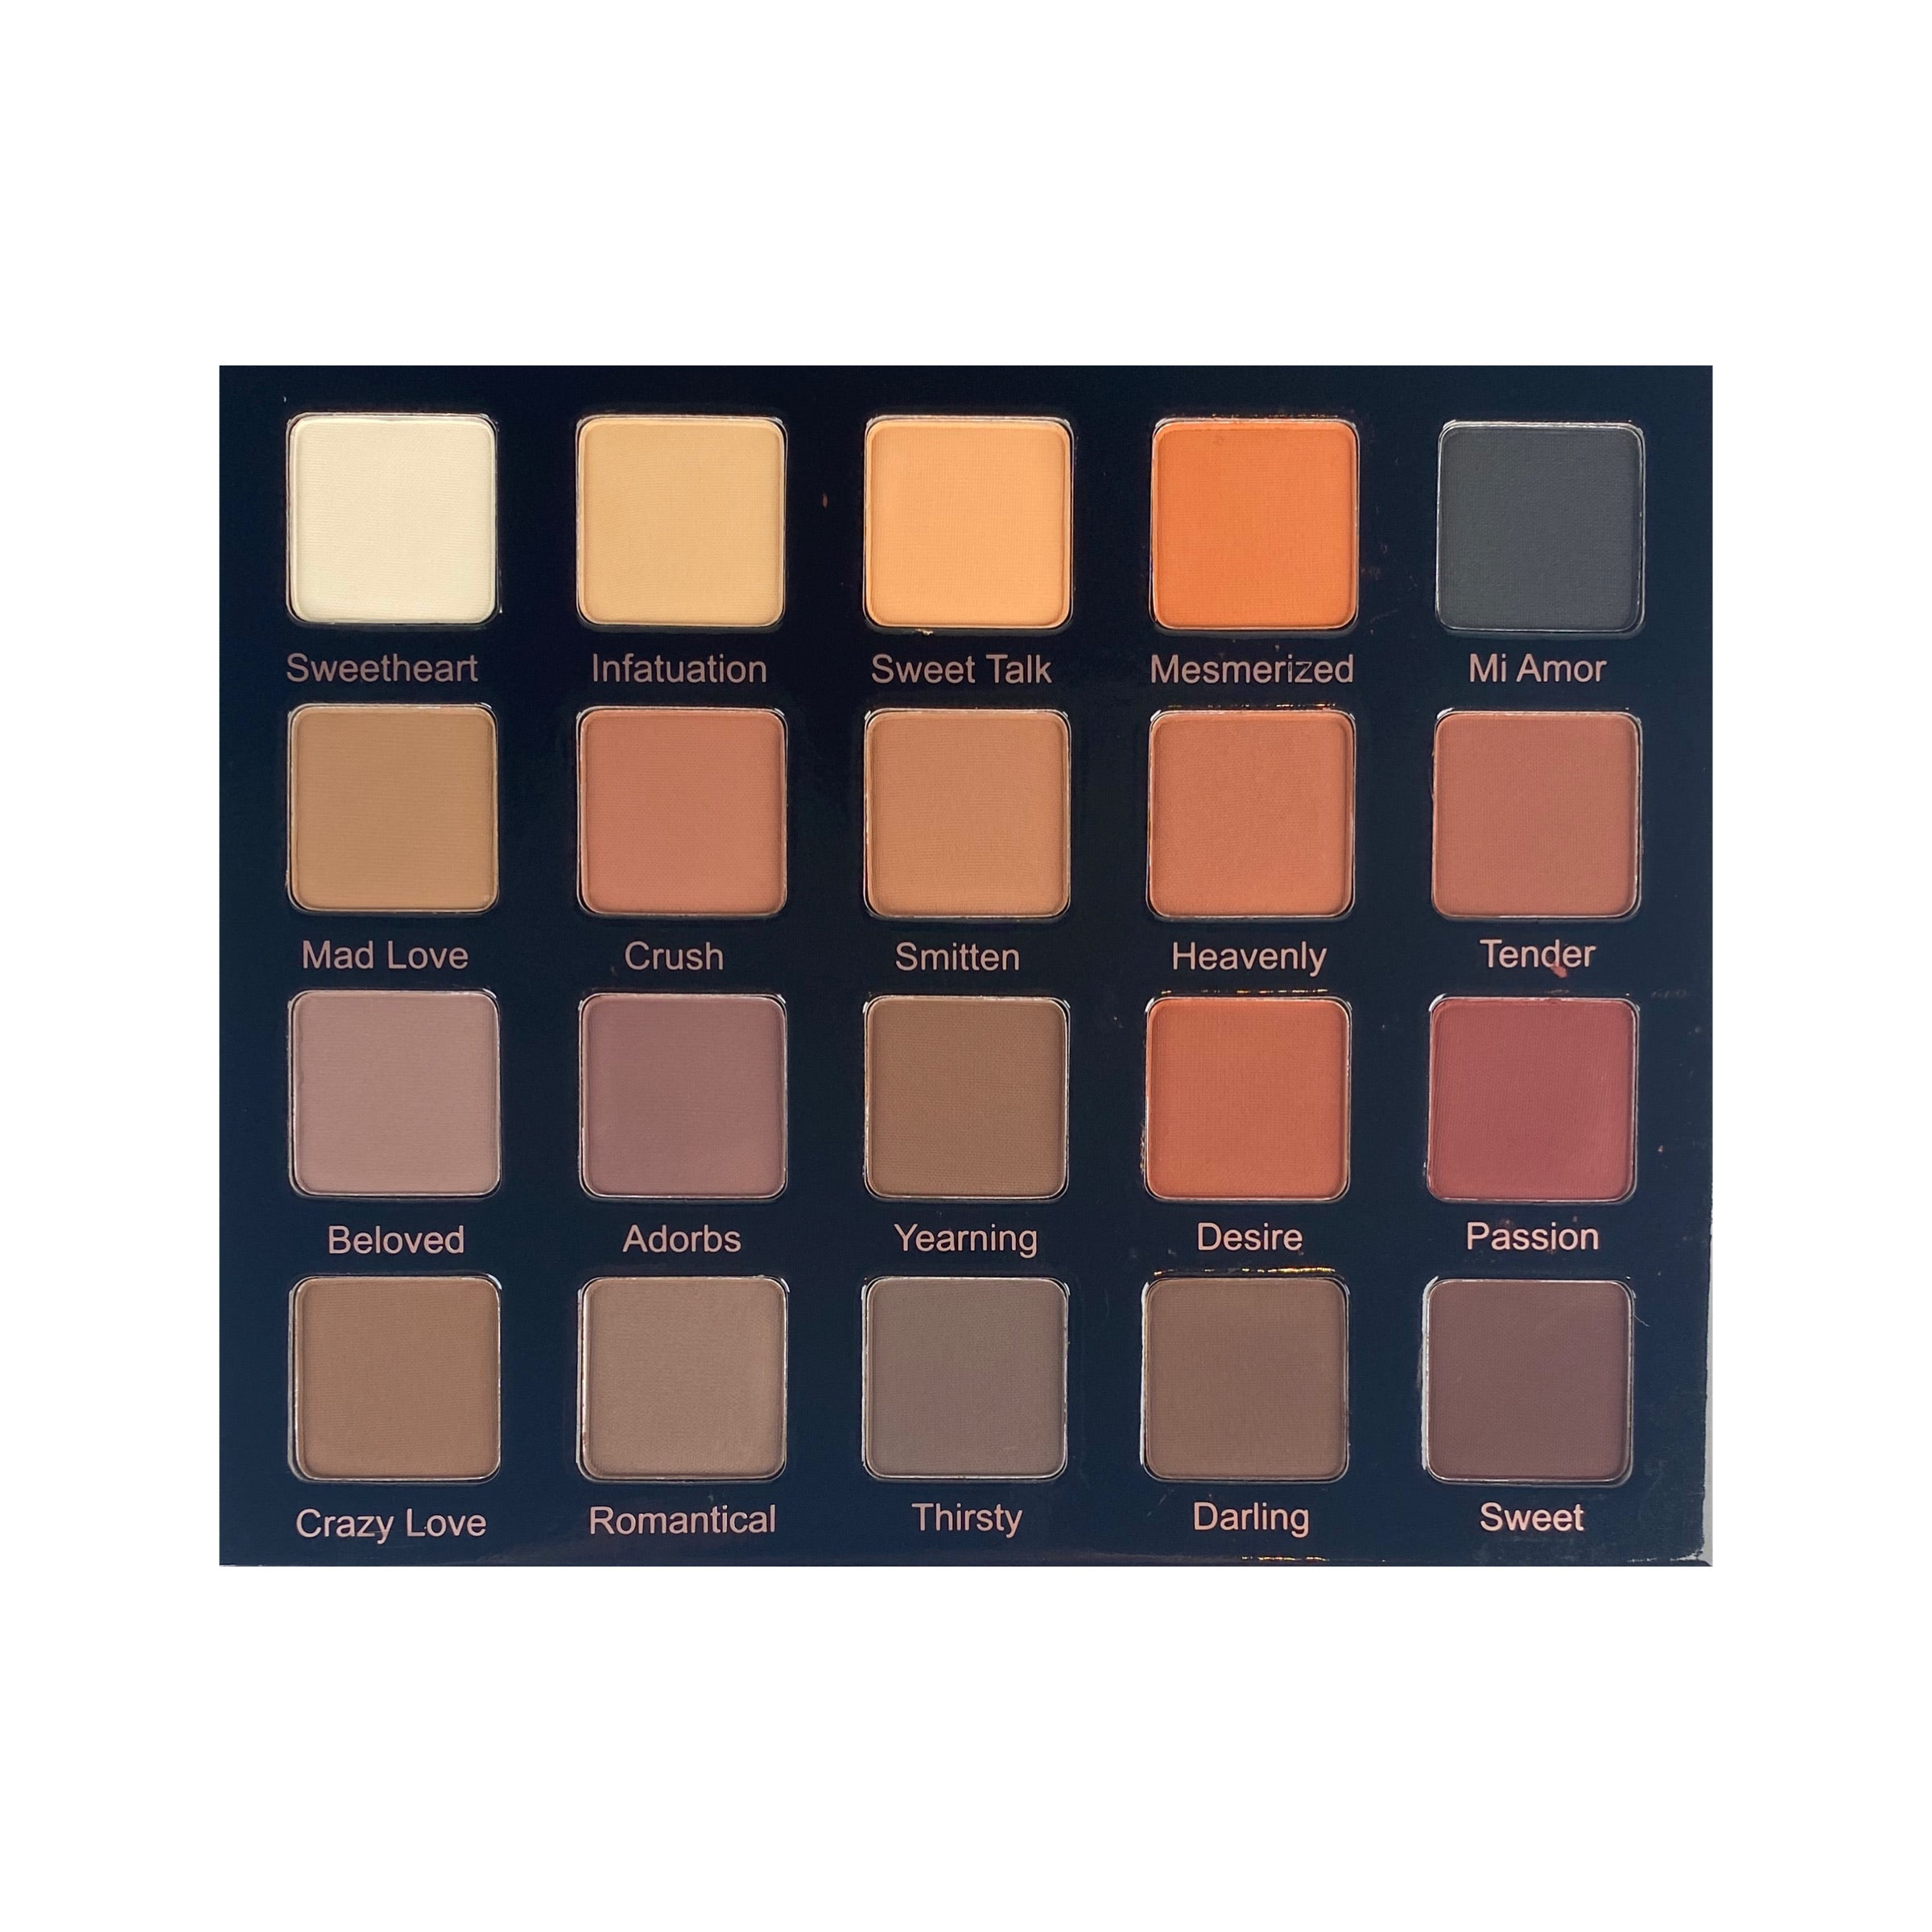 Violet Voss Matte About You Pro Eye Shadow Palette, eyeshadow palette, London Loves Beauty